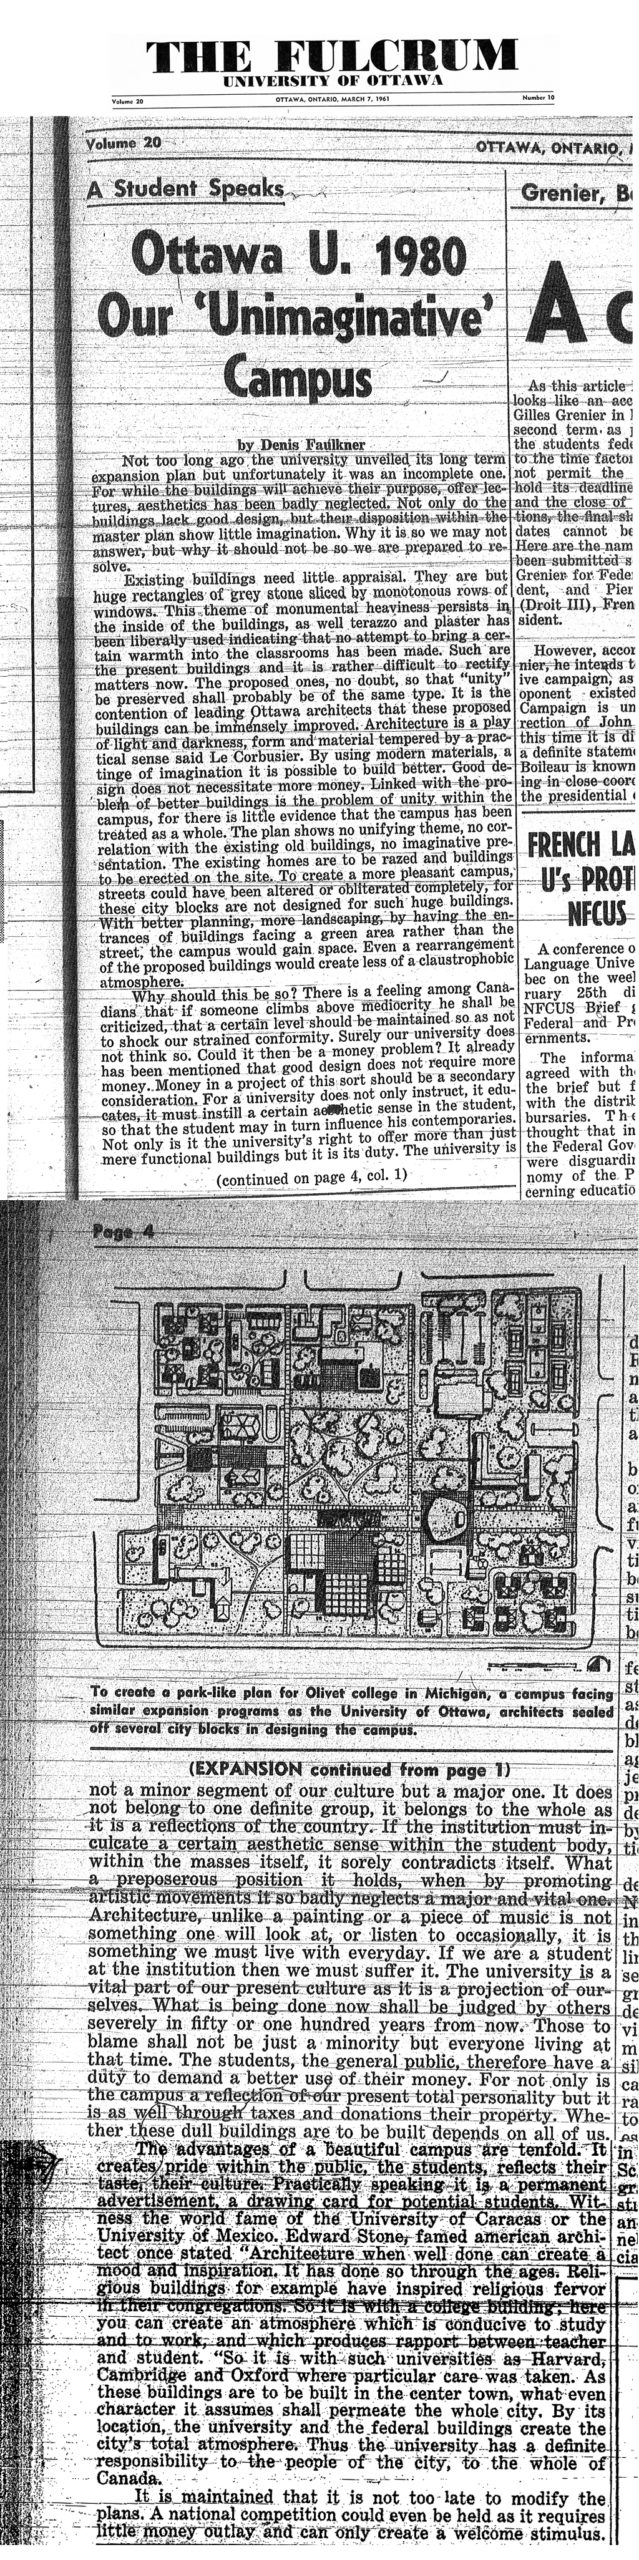 The article that changed the UofO campus and drew people to Le Hibou.